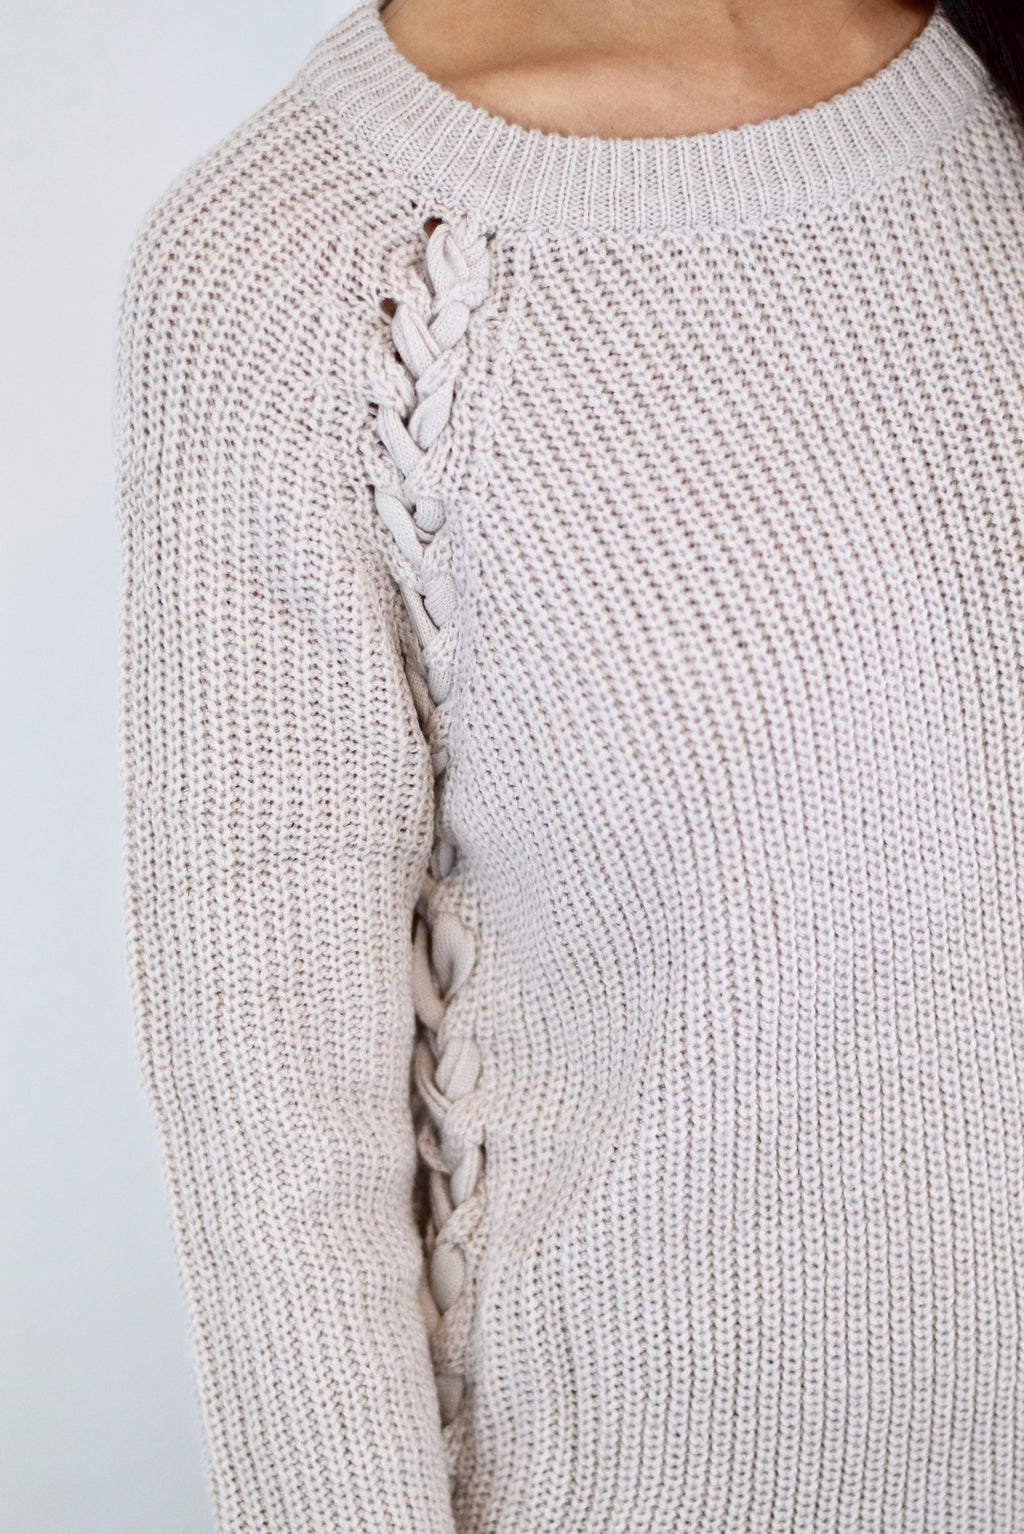 Tied Up Sweater - Mint Pop Shop